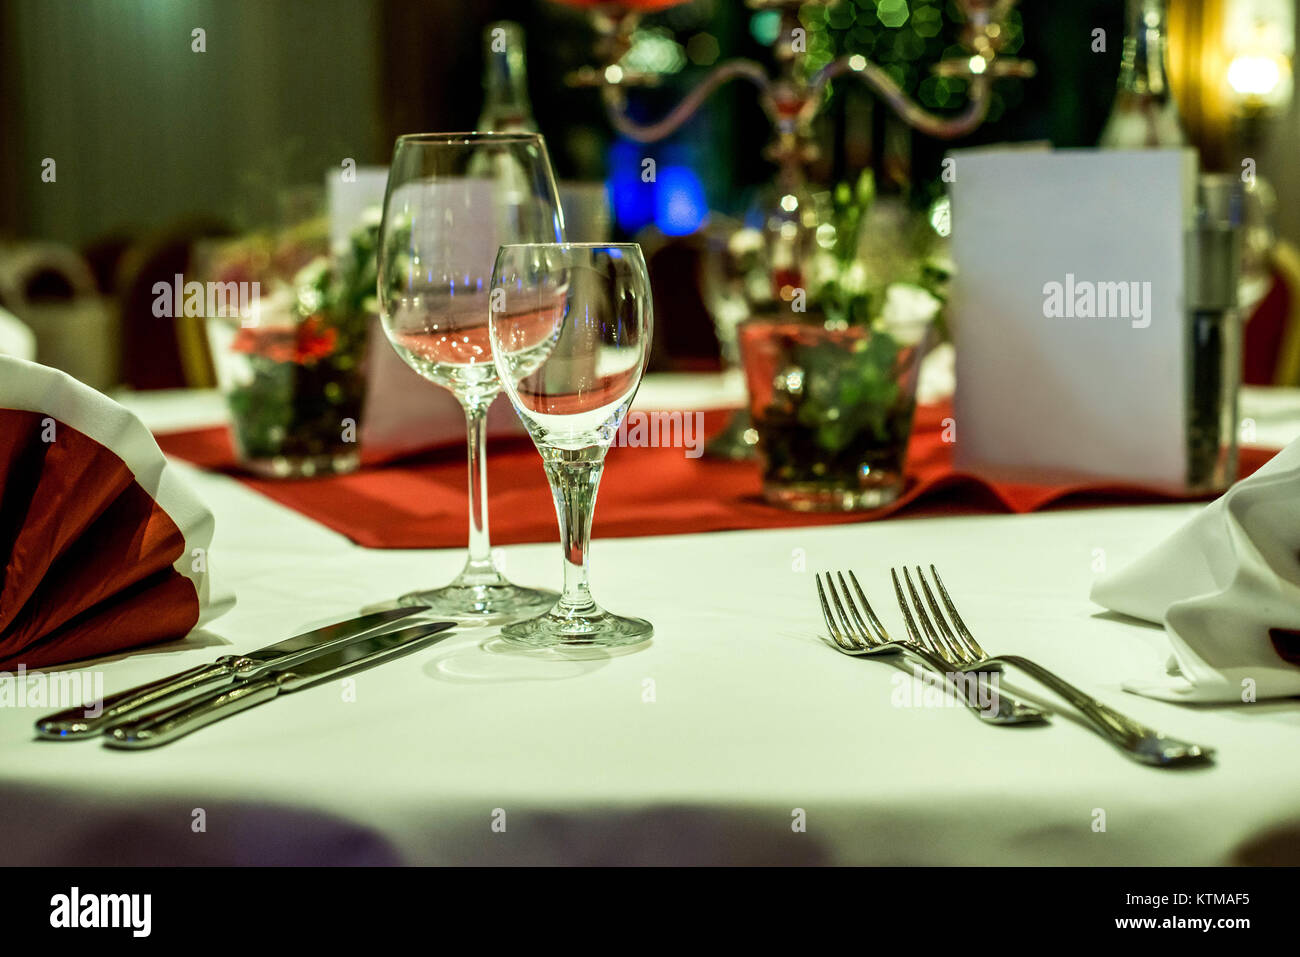 Banquet with red table setting Red tablecloth, white dishes, silver cutlery and glasses plus some decorations white - Stock Image